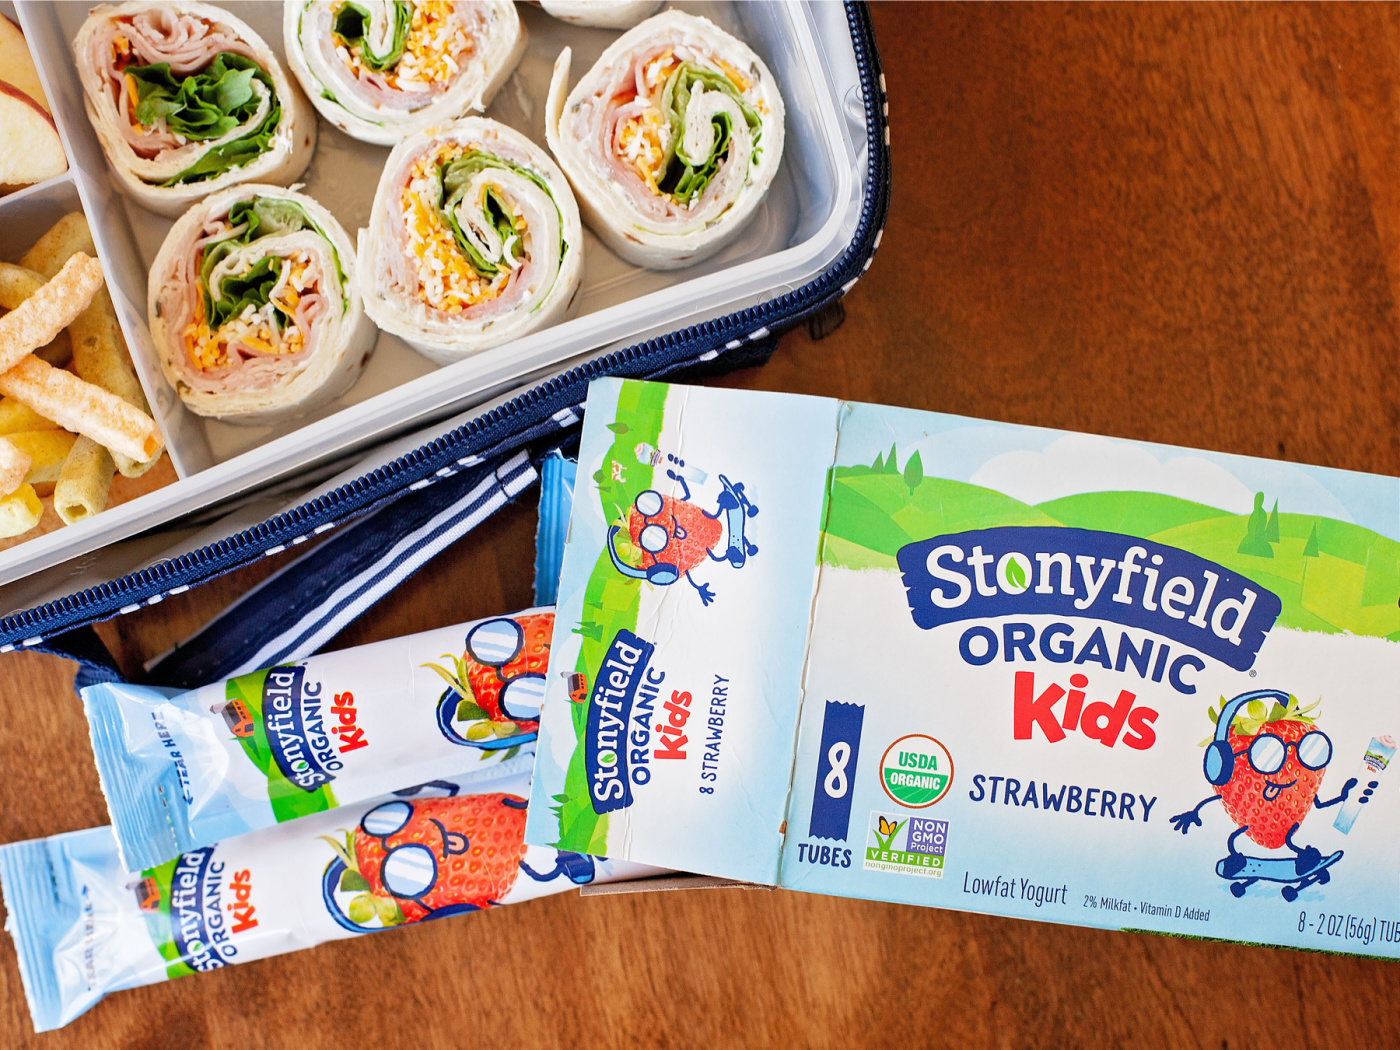 Stonyfield Kids Yogurt Multipacks As Low As $1.65 At Publix on I Heart Publix 1